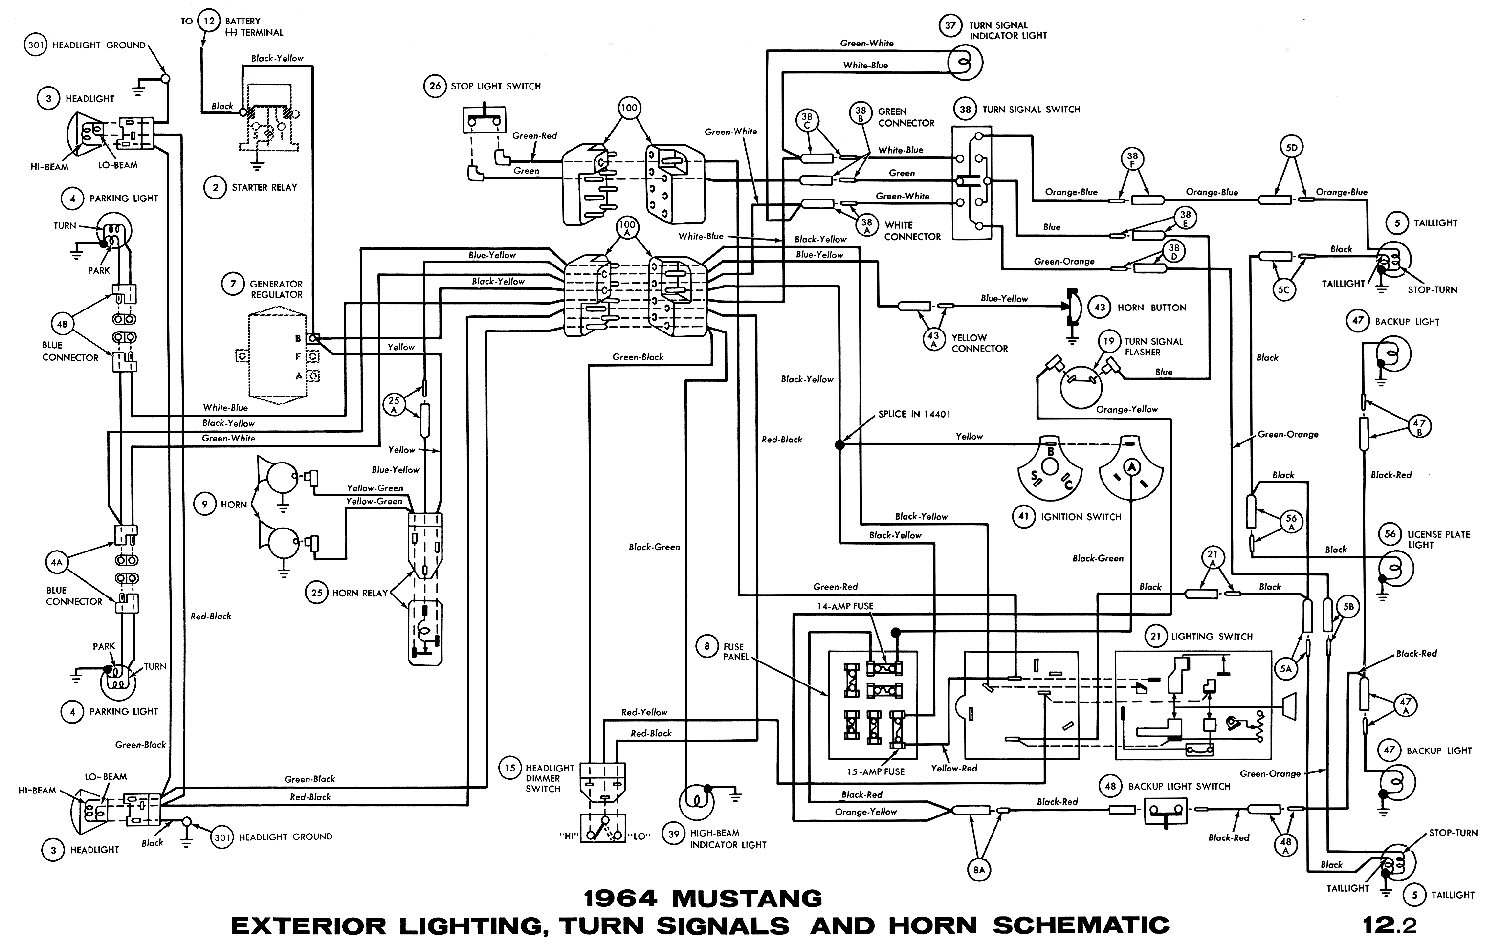 1965 Ford Mustang Horn Wiring Diagram. Ford. Auto Parts